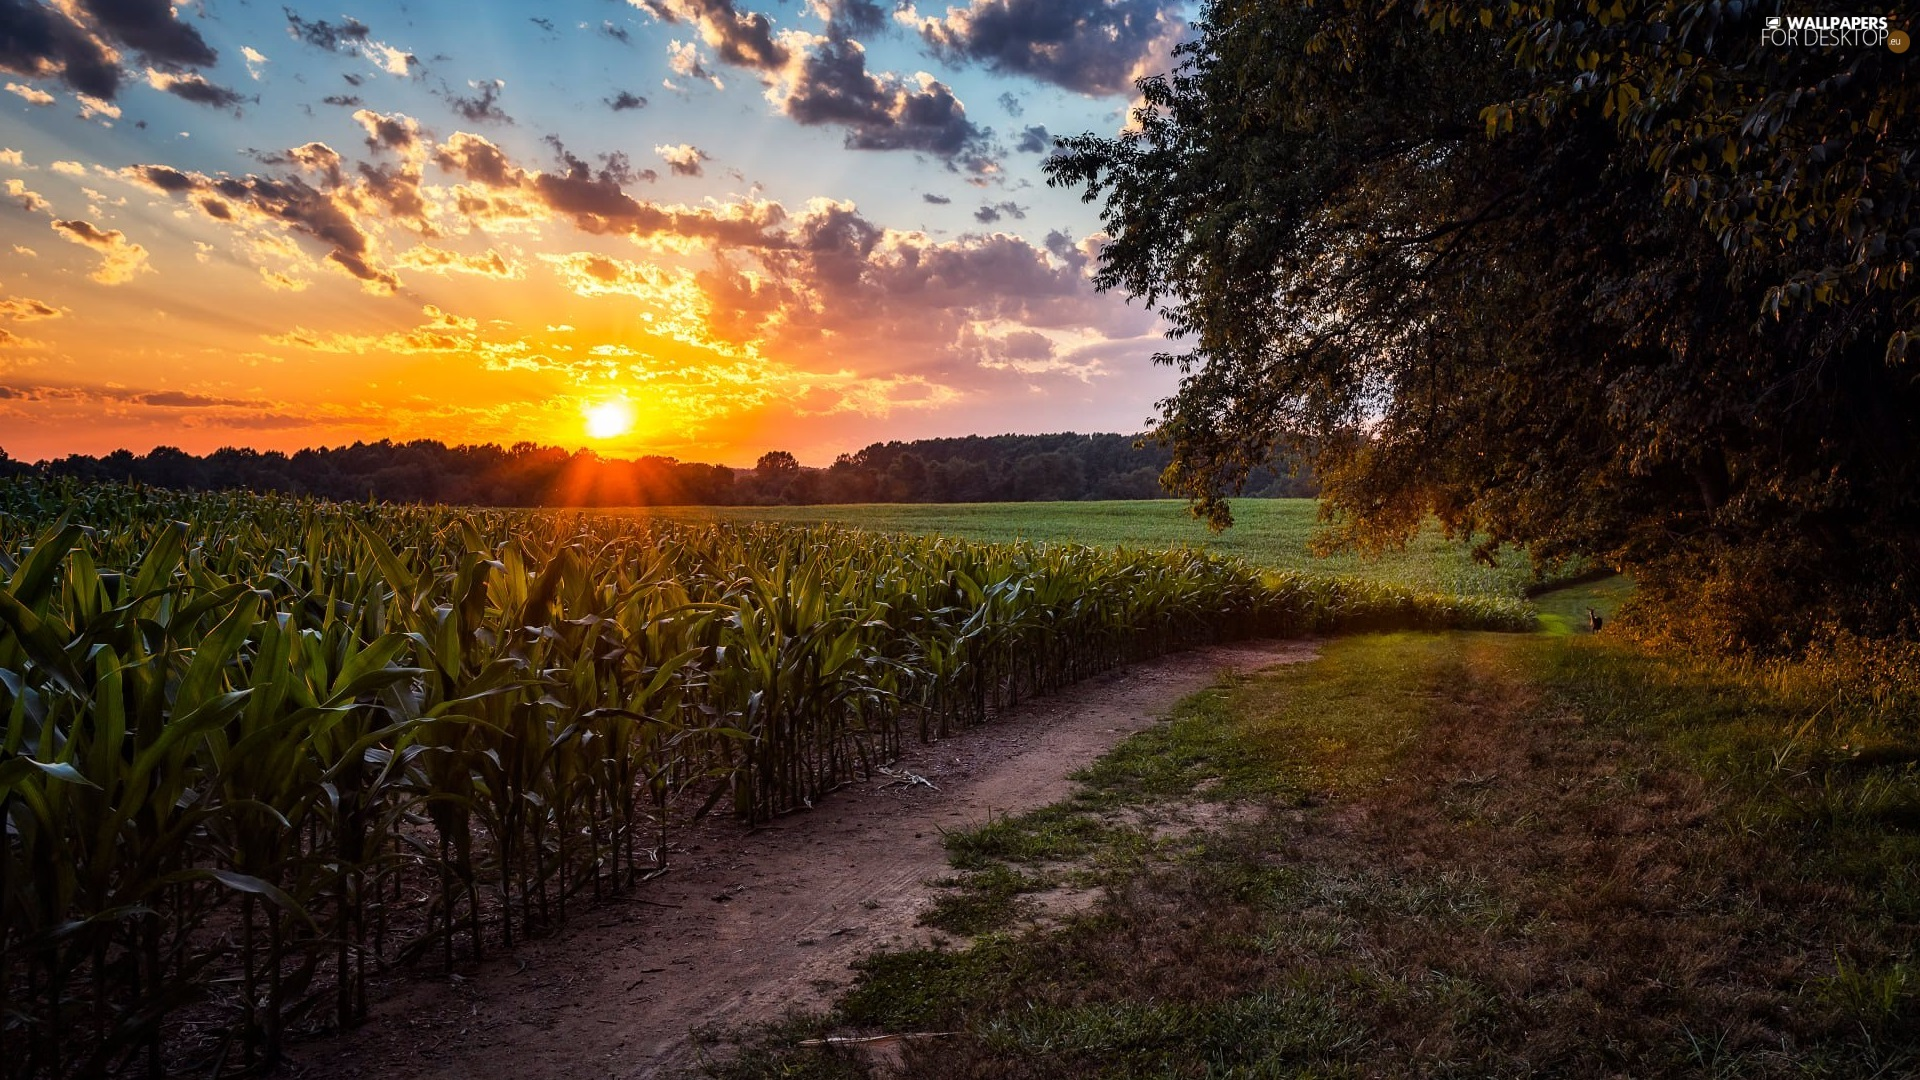 trees, Field, Sunrise, clouds, viewes, Path